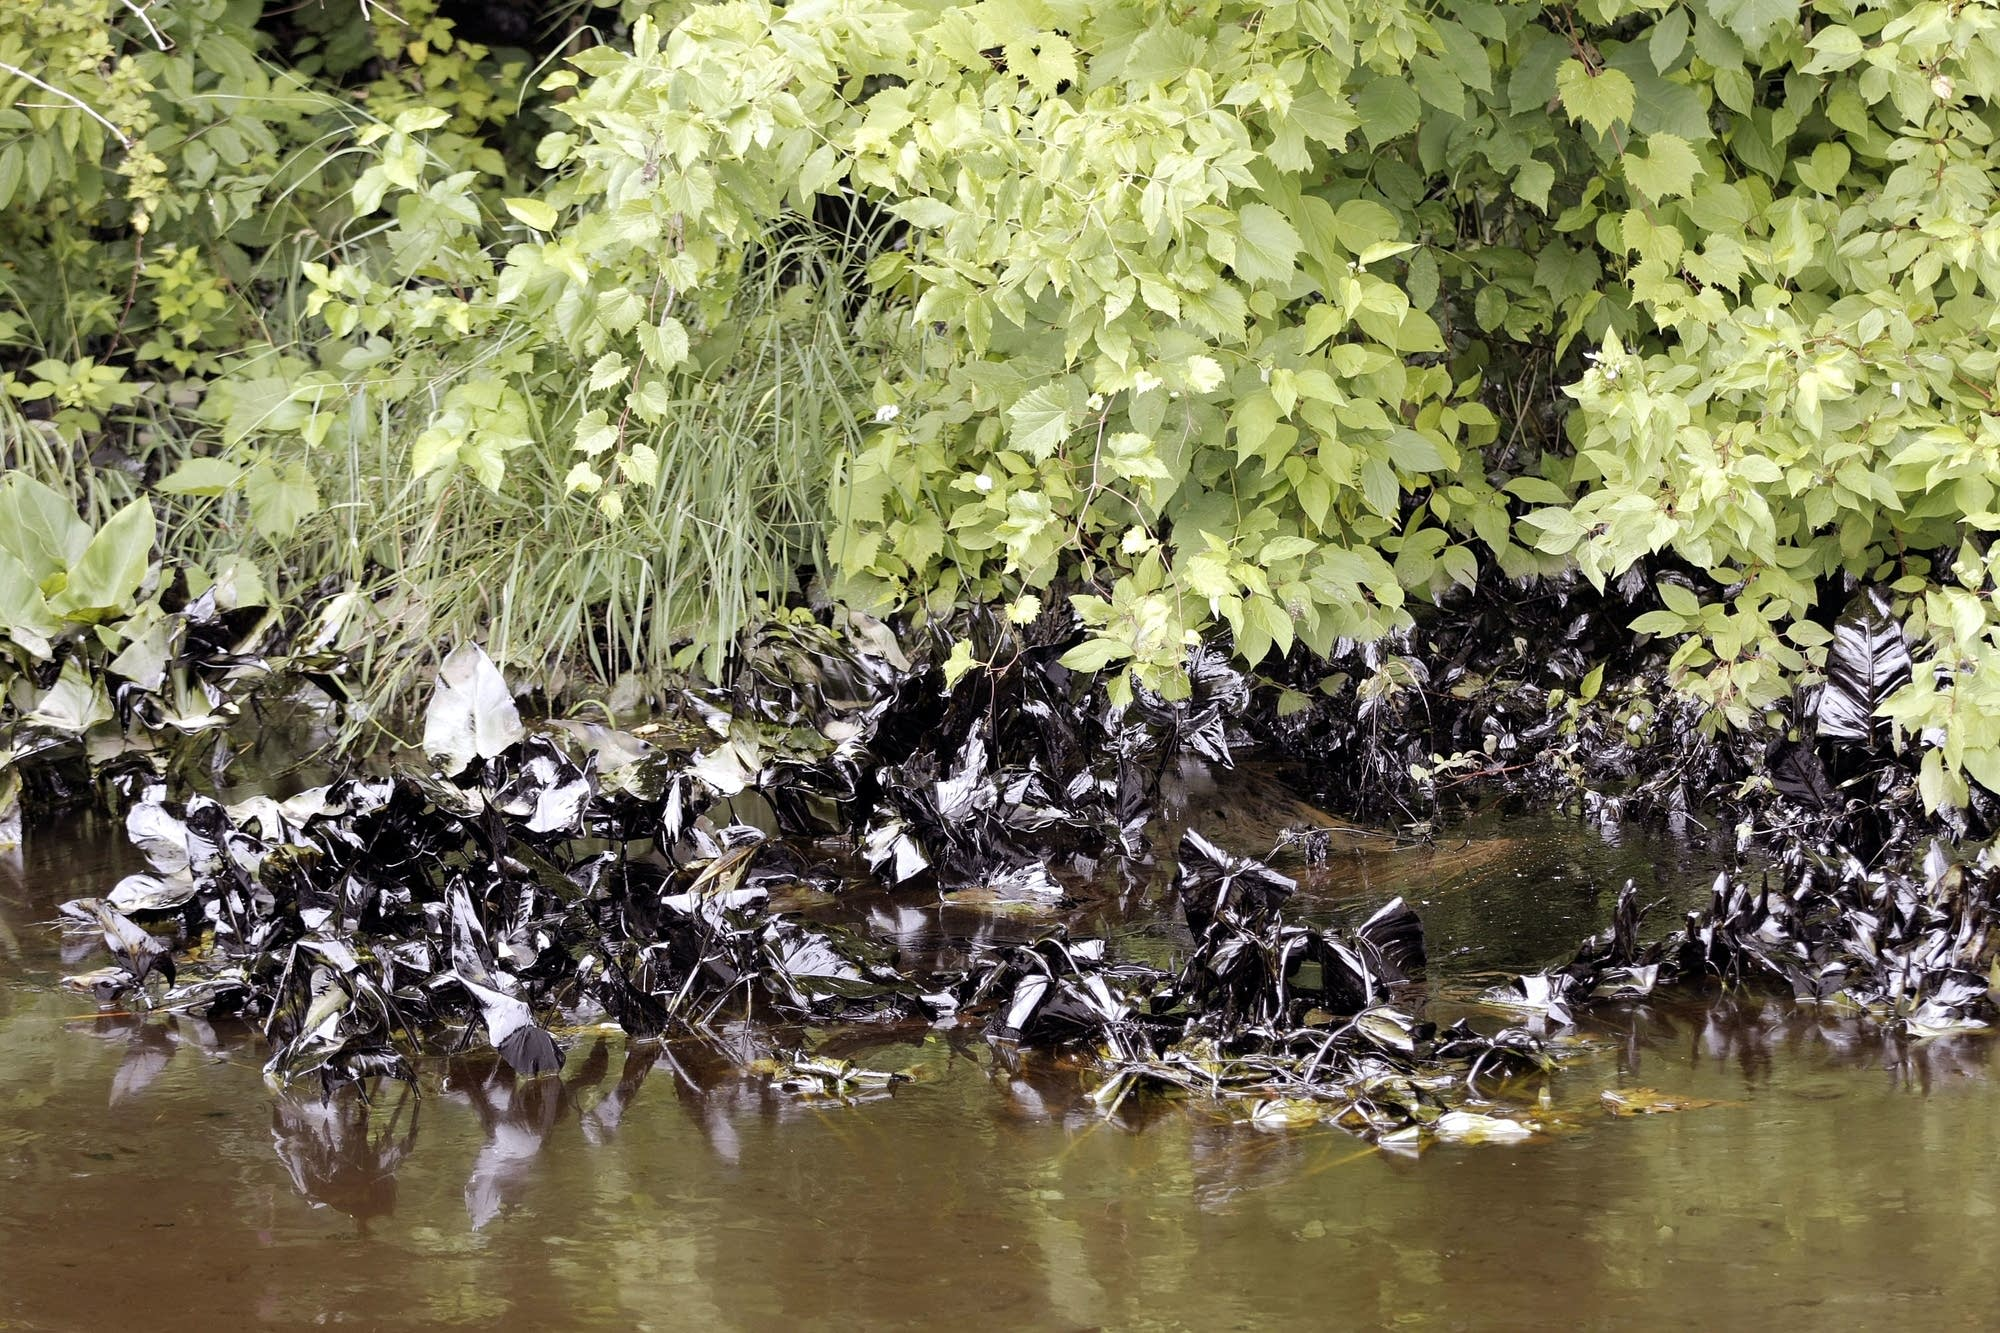 Oil clings to plants in the Kalamazoo River after an oil spill.